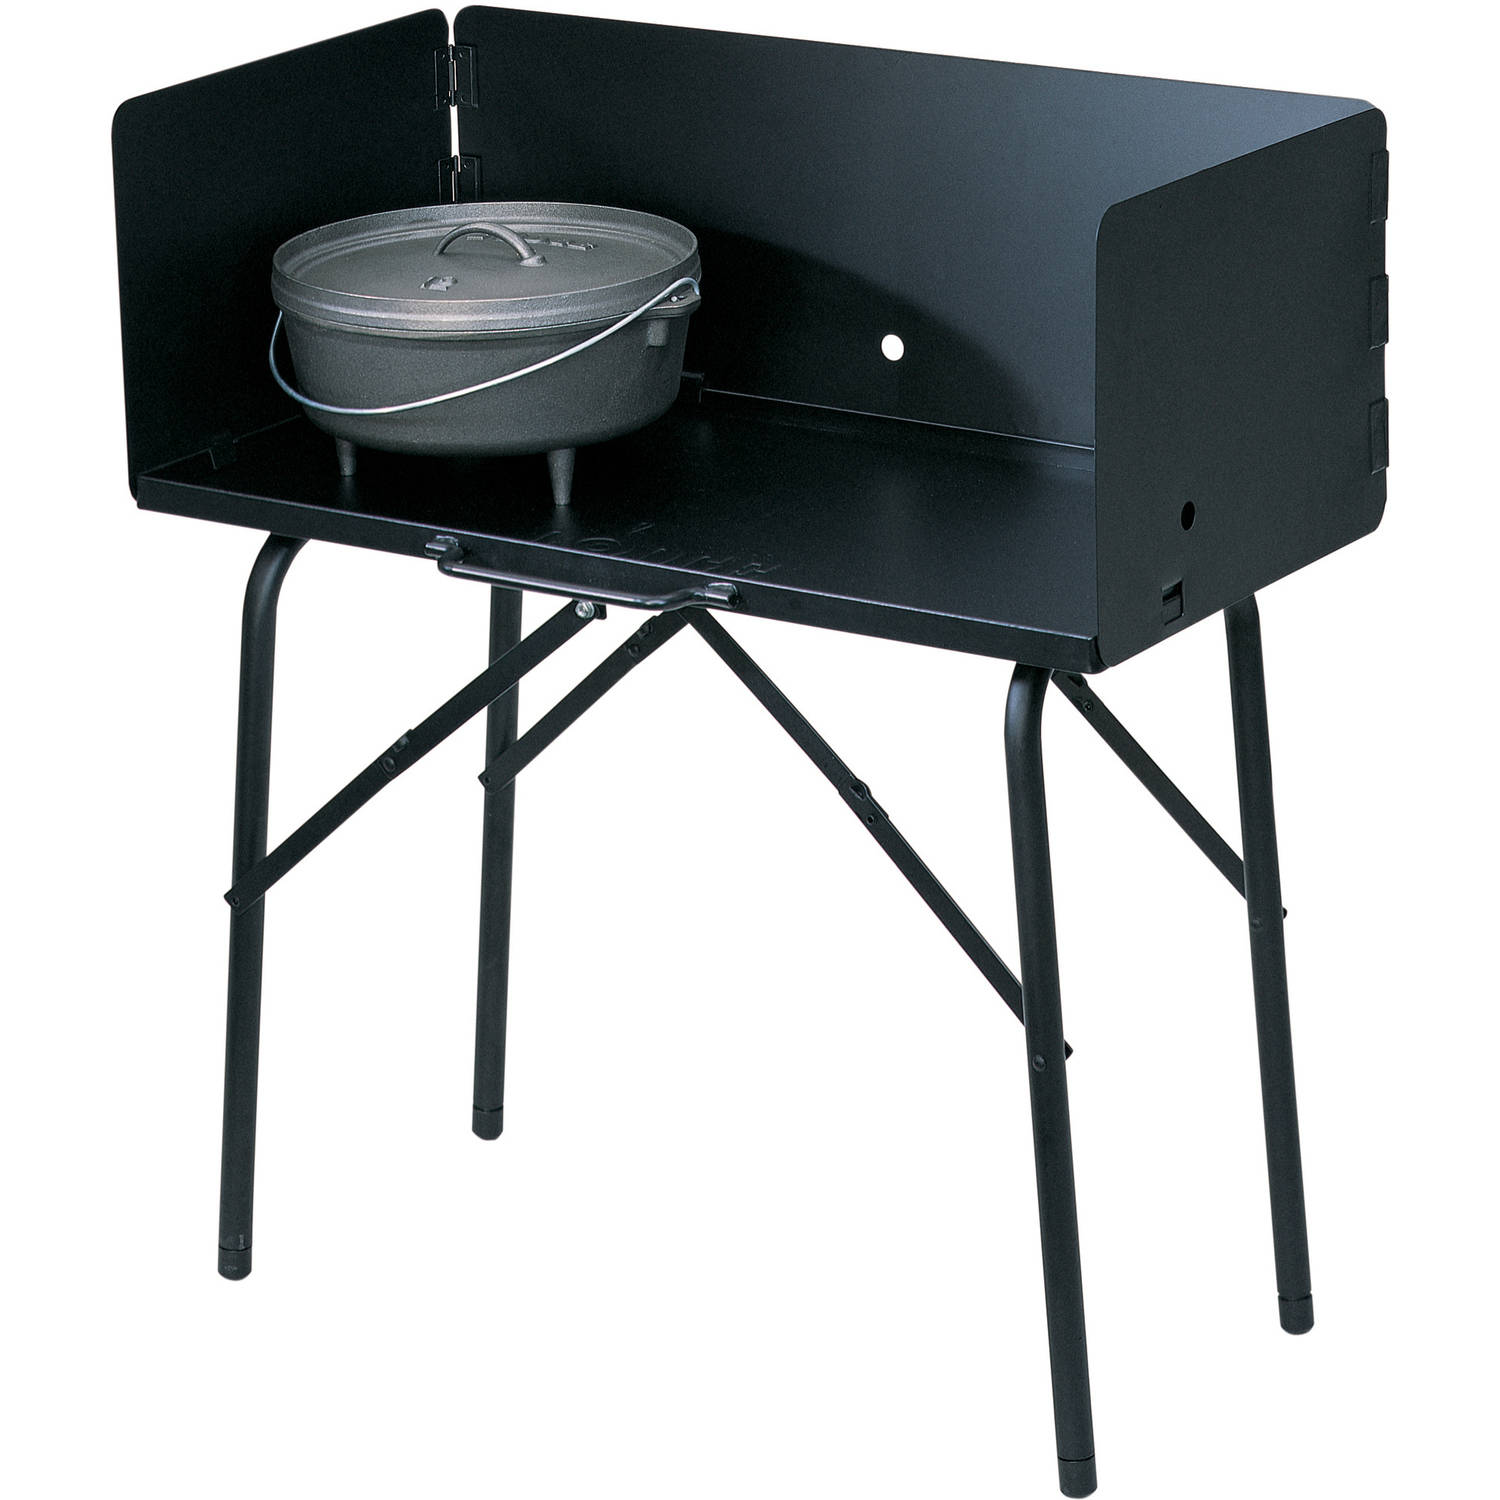 Lodge Camp Dutch Oven Cooking Table A5 7 Walmart Com